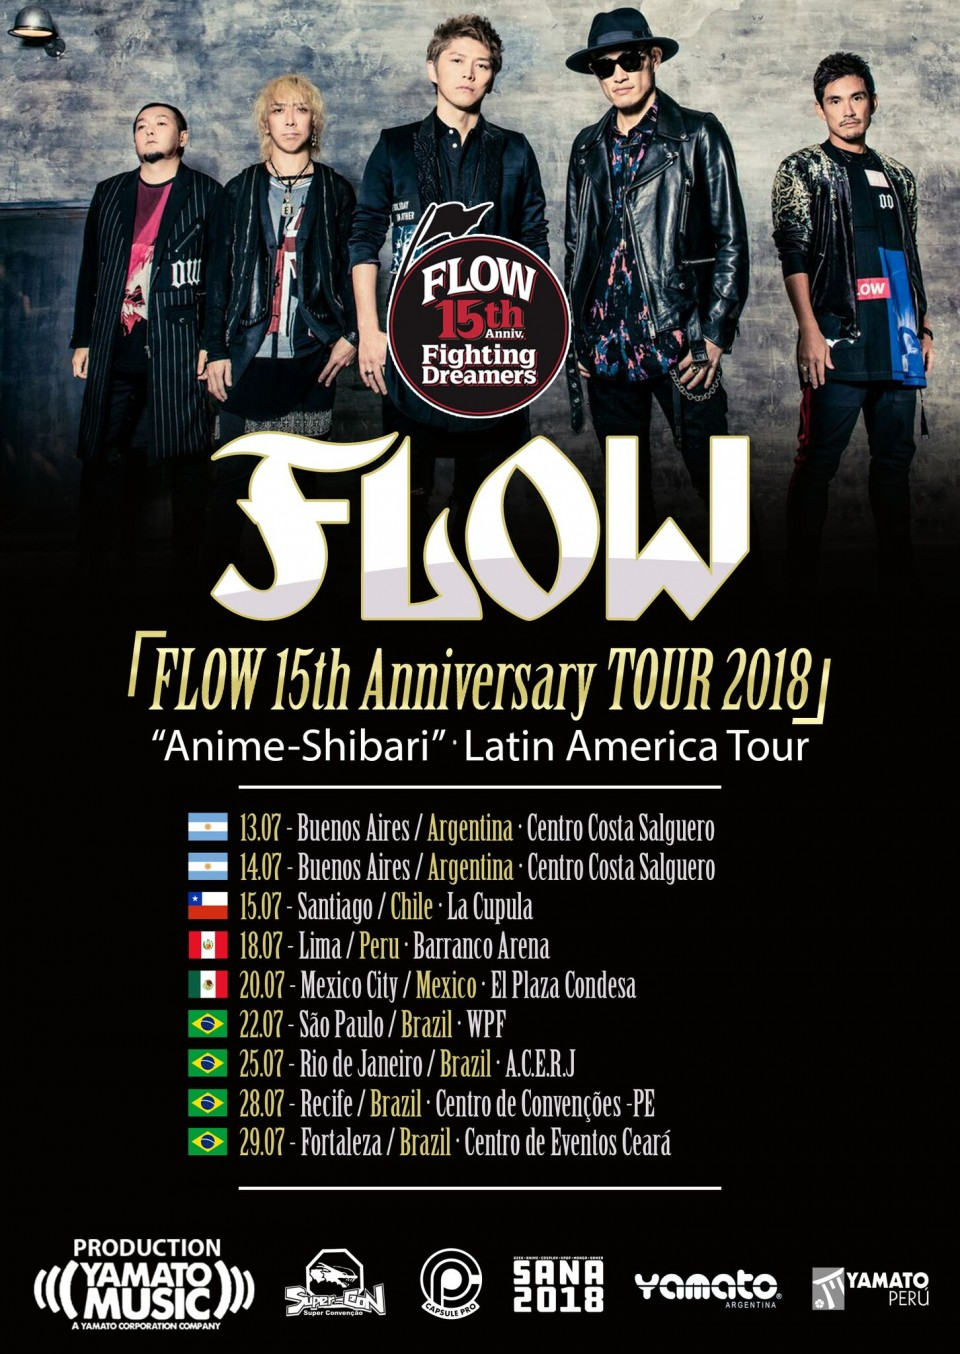 FLOW announces return to Latin America for 15th anniversary world tour